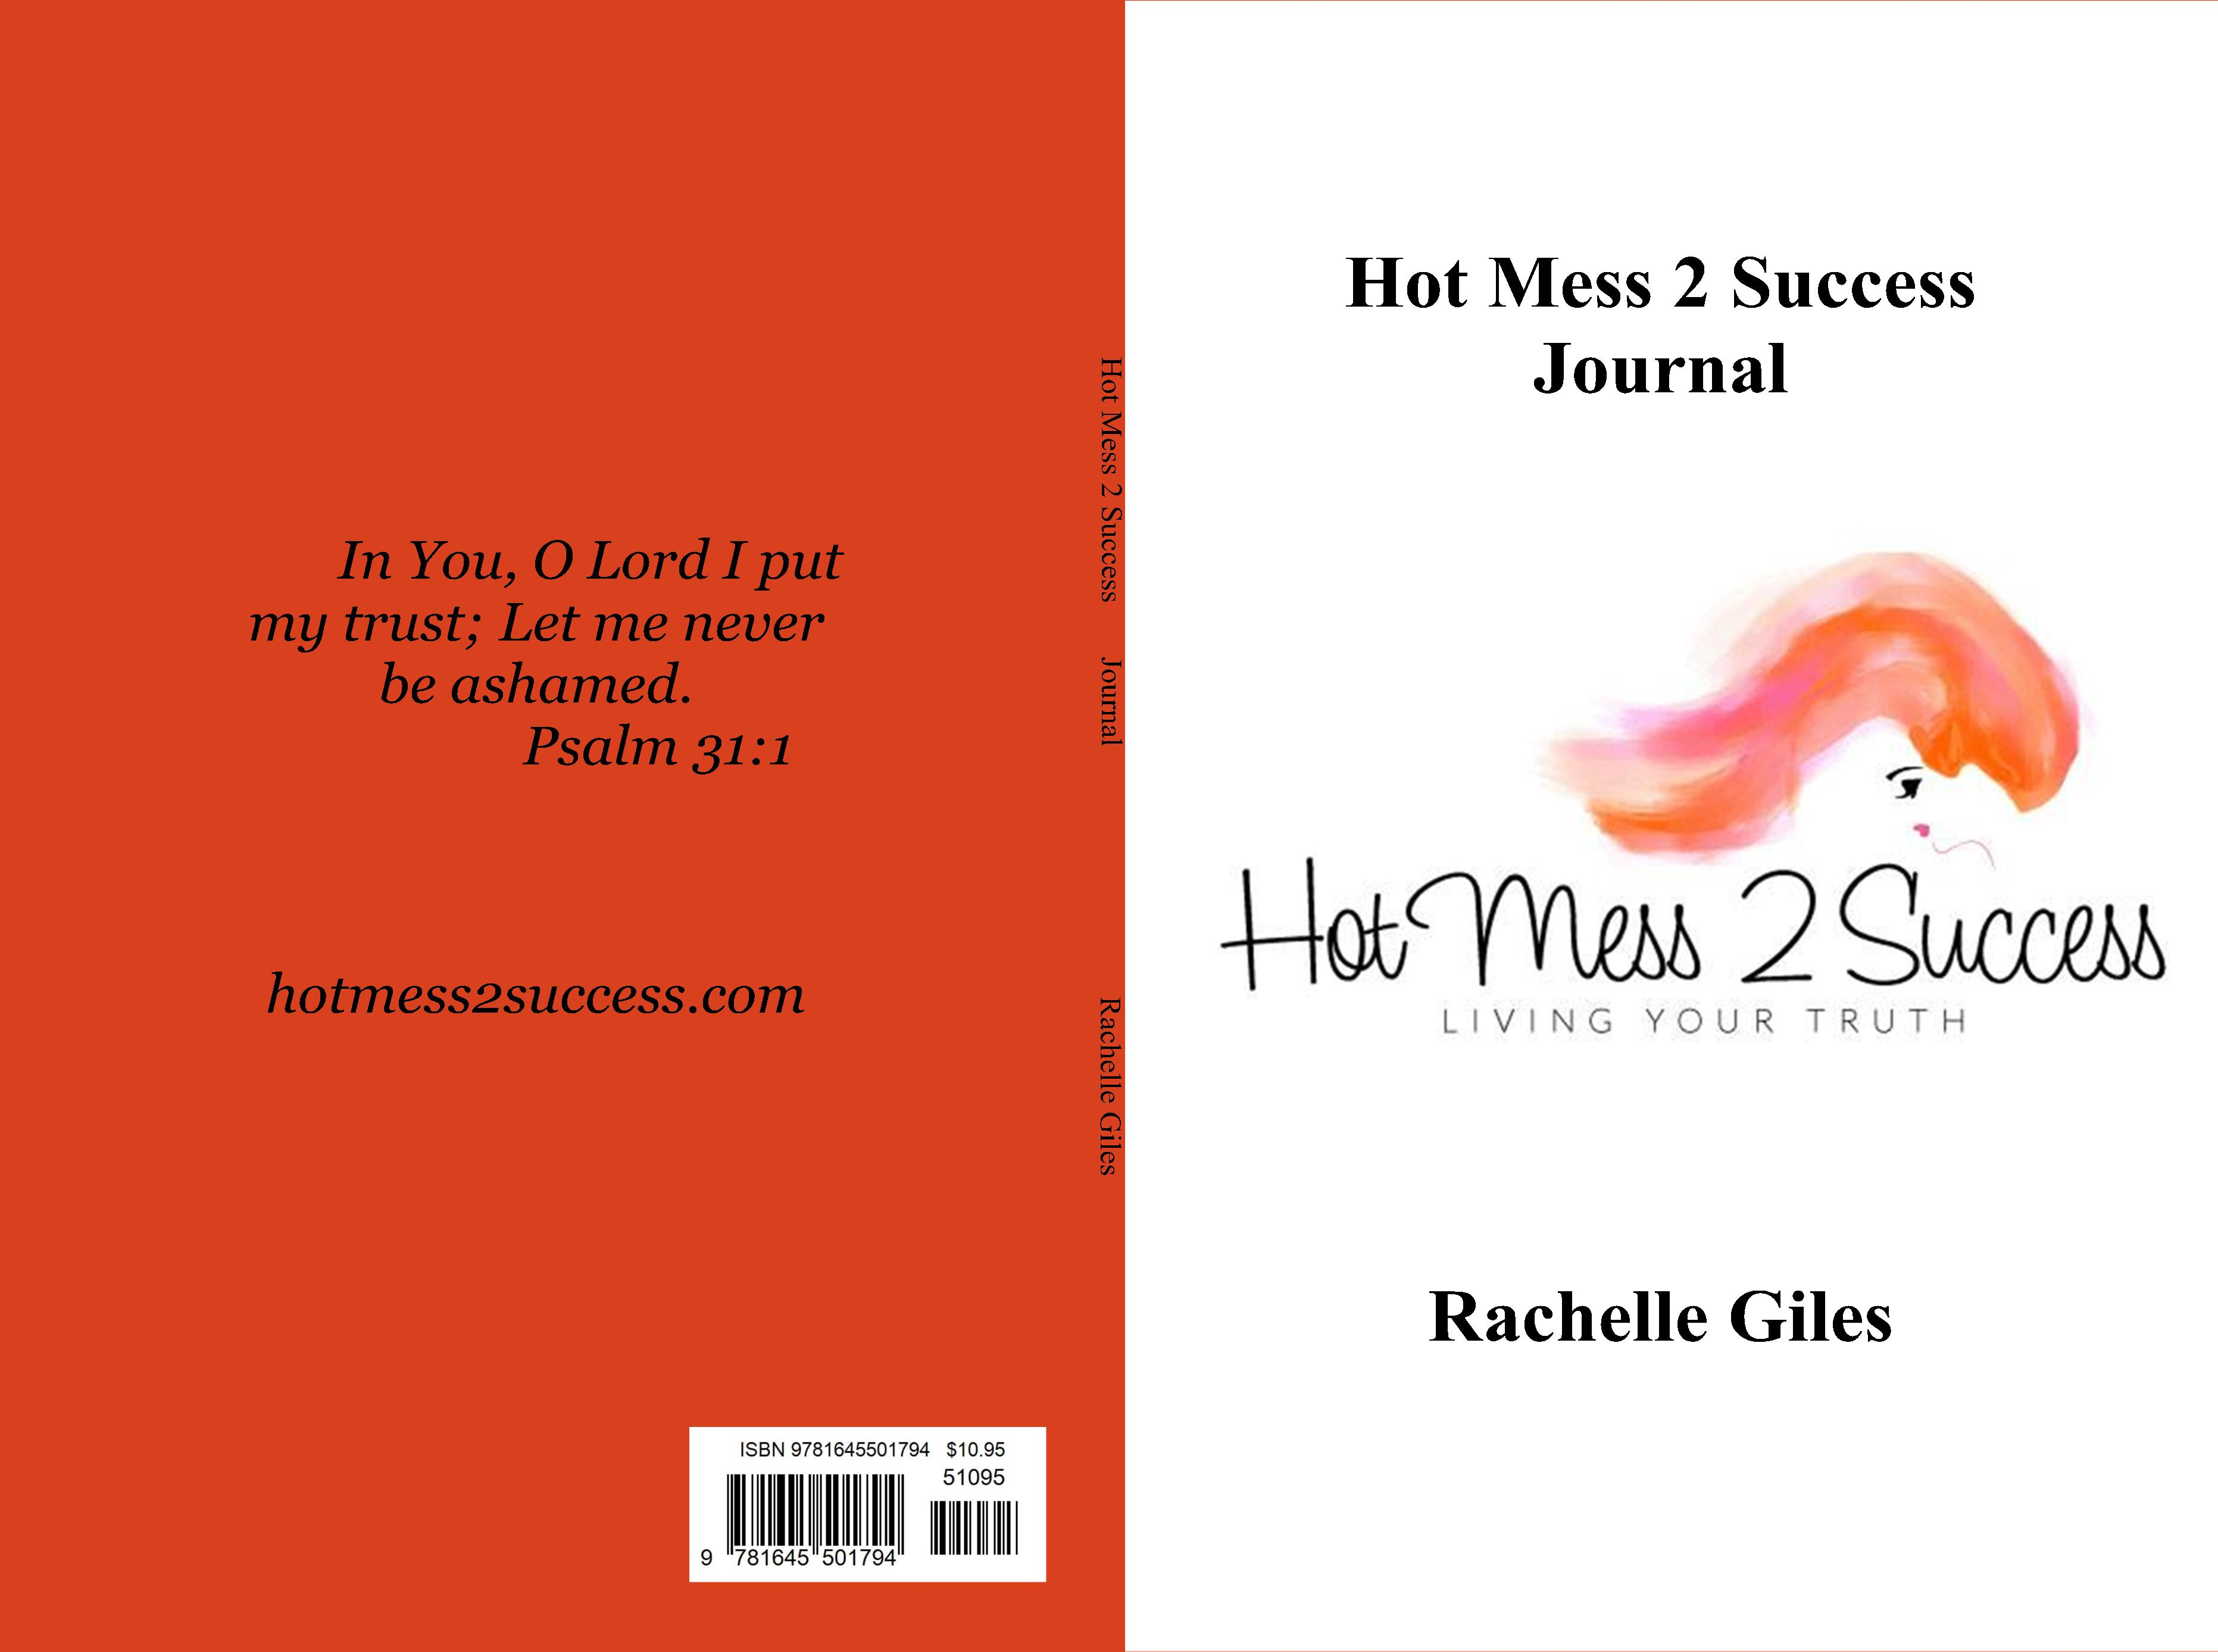 Hot Mess 2 Success Journal cover image